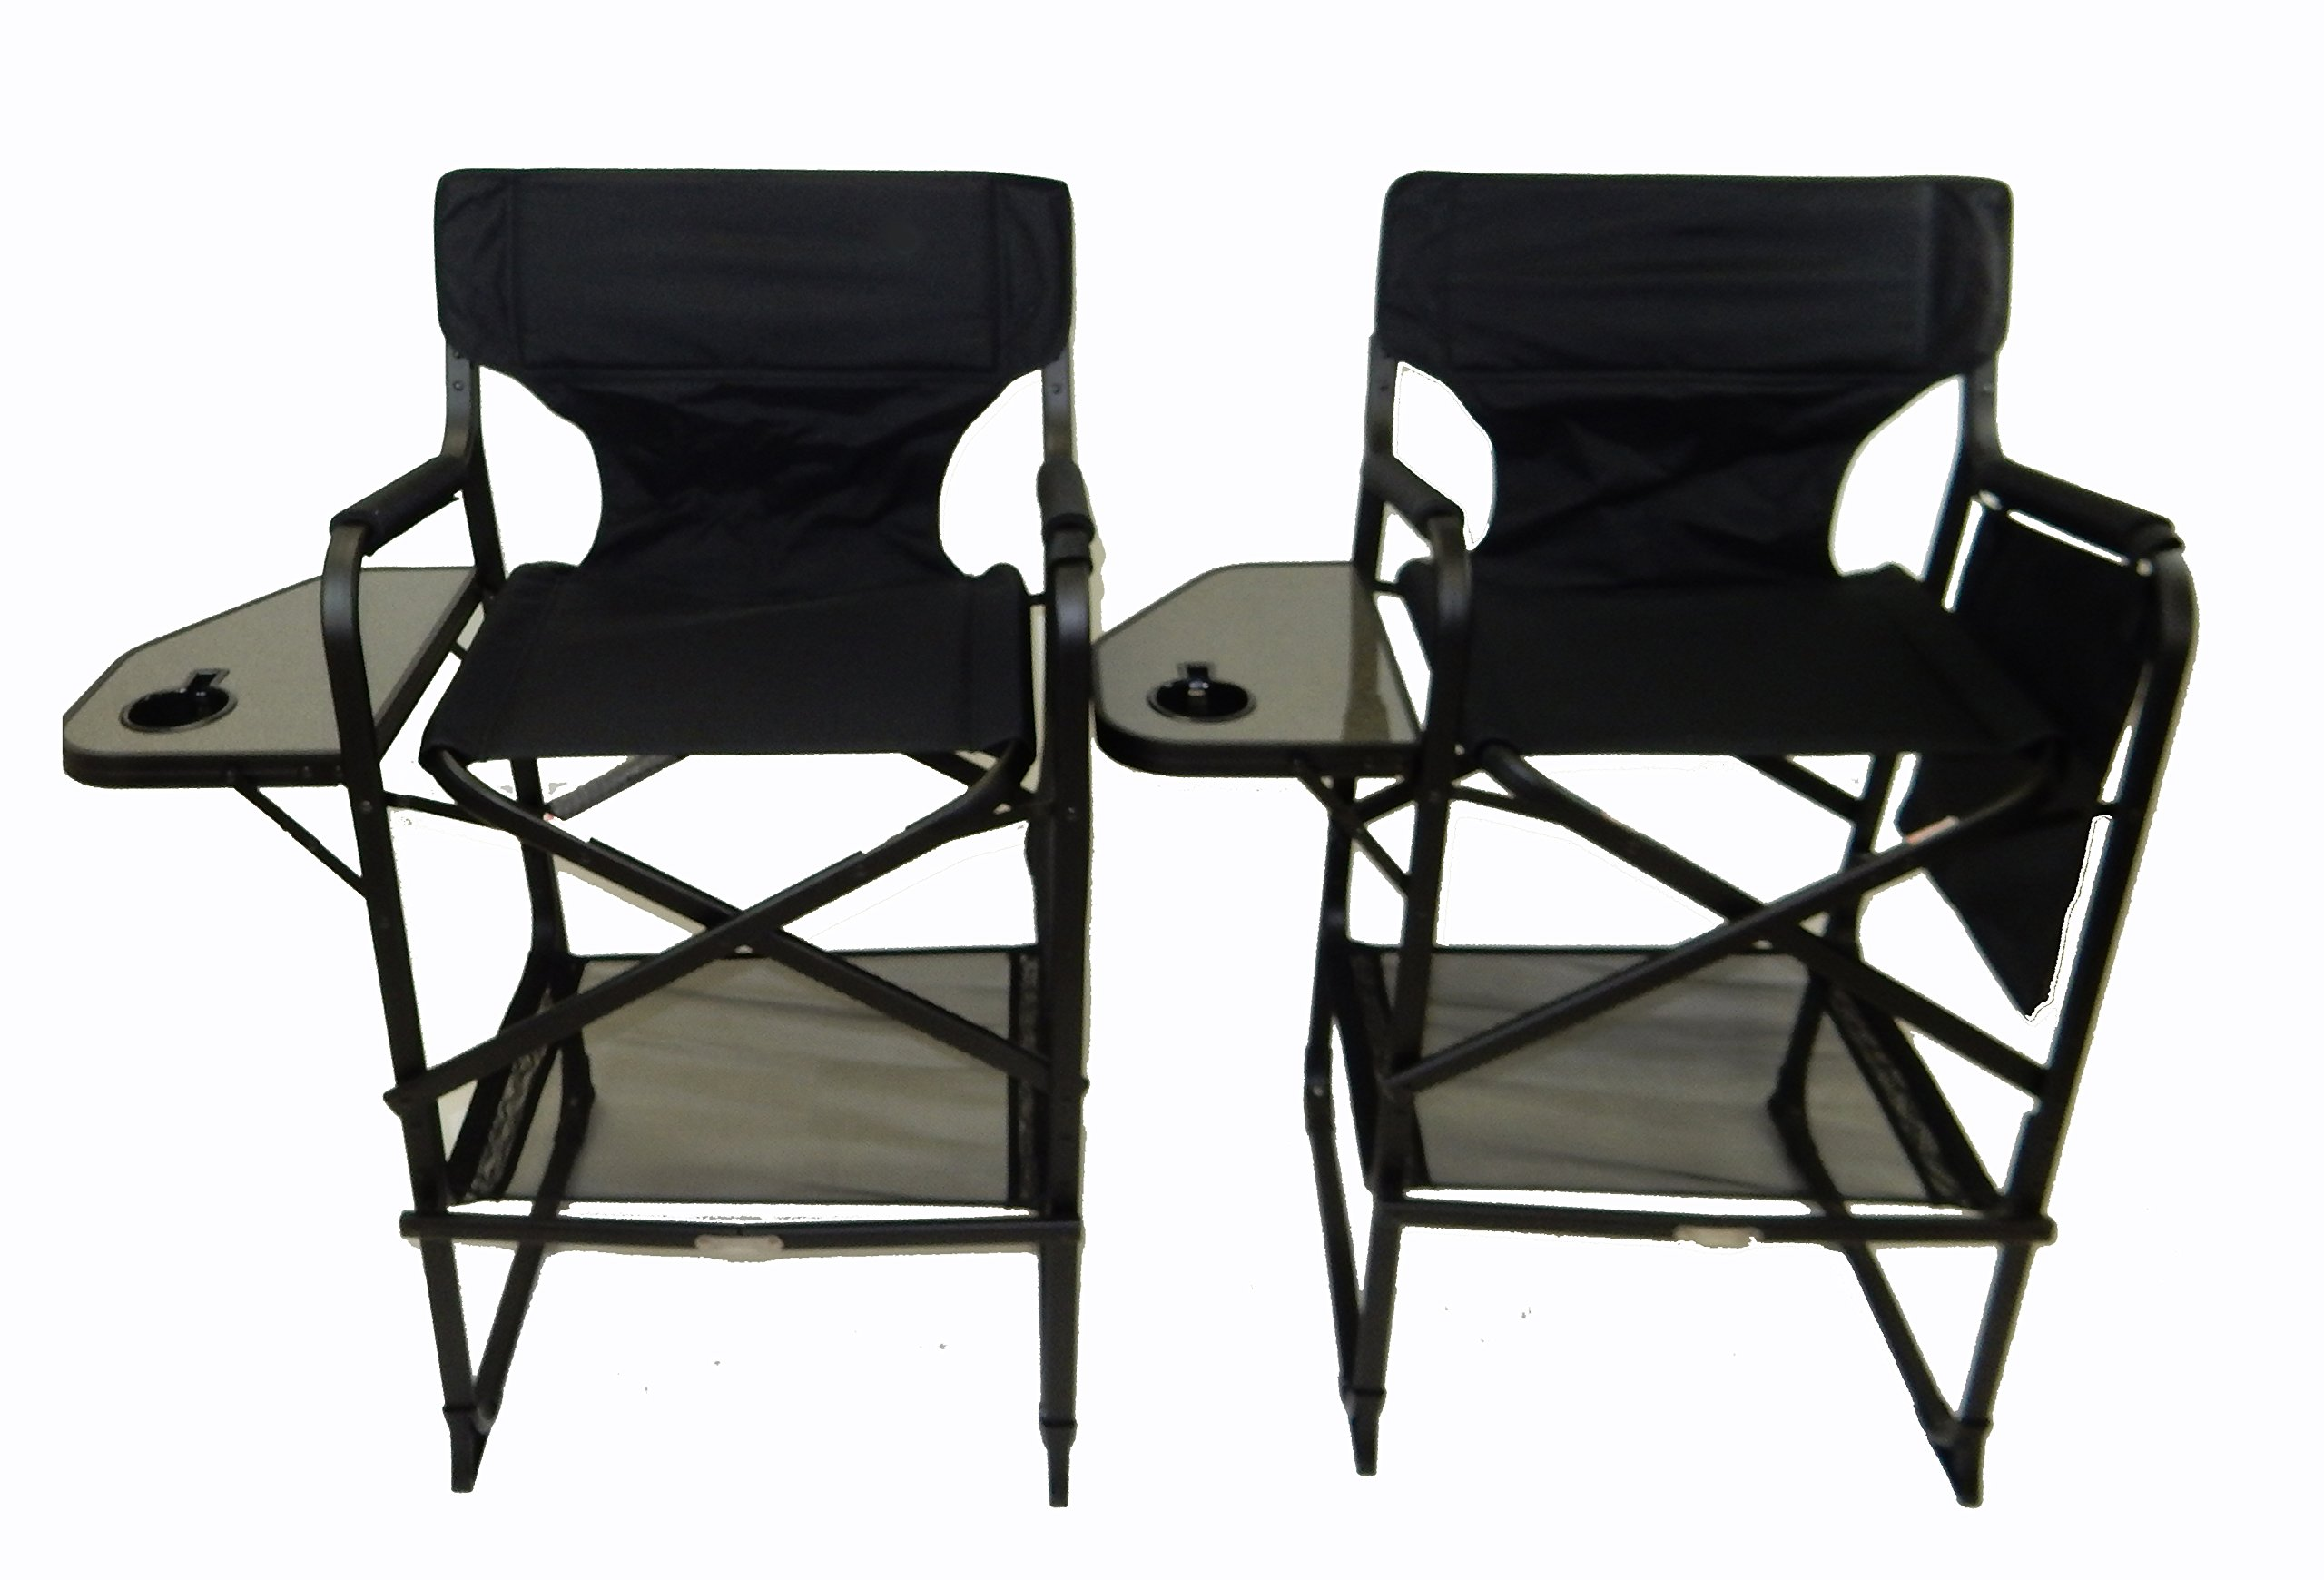 TWO PACK World Outdoor Products Lightweight PROFESSIONAL EDITION Tall Directors Chair,Side Table,Cup Holder,Automatic Footrest,Side Storage Bag,Under Seat Storage Net, REMOVABLE PATCH on Chair Back.